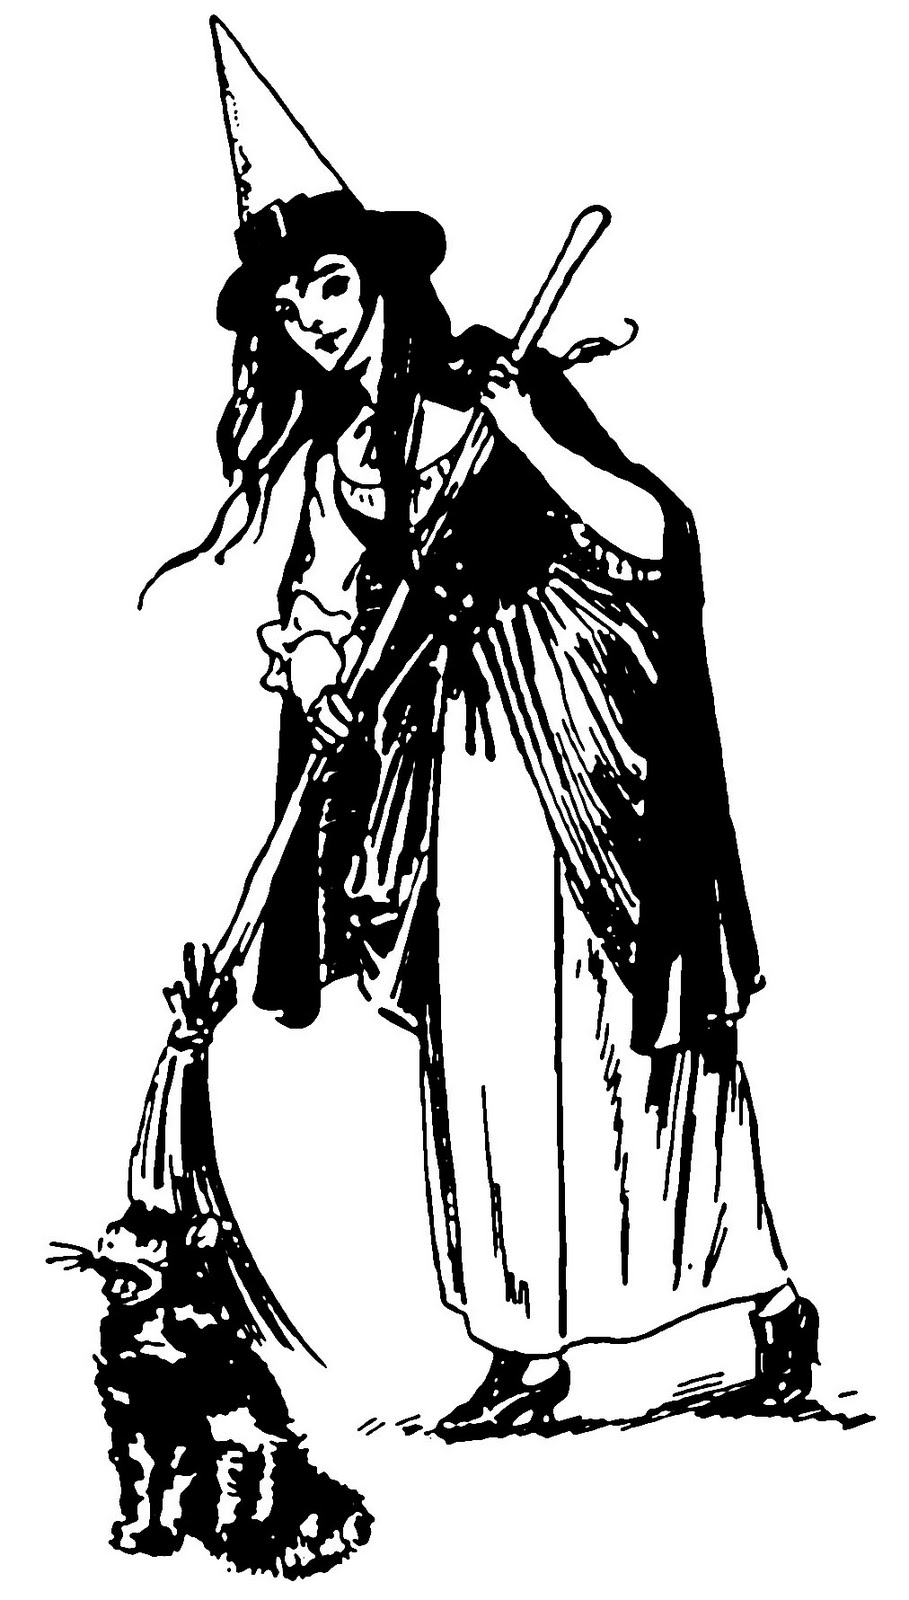 This Pretty Witch Is From An Antique Newspaper Article That Had Suggestions For Halloween Costumes